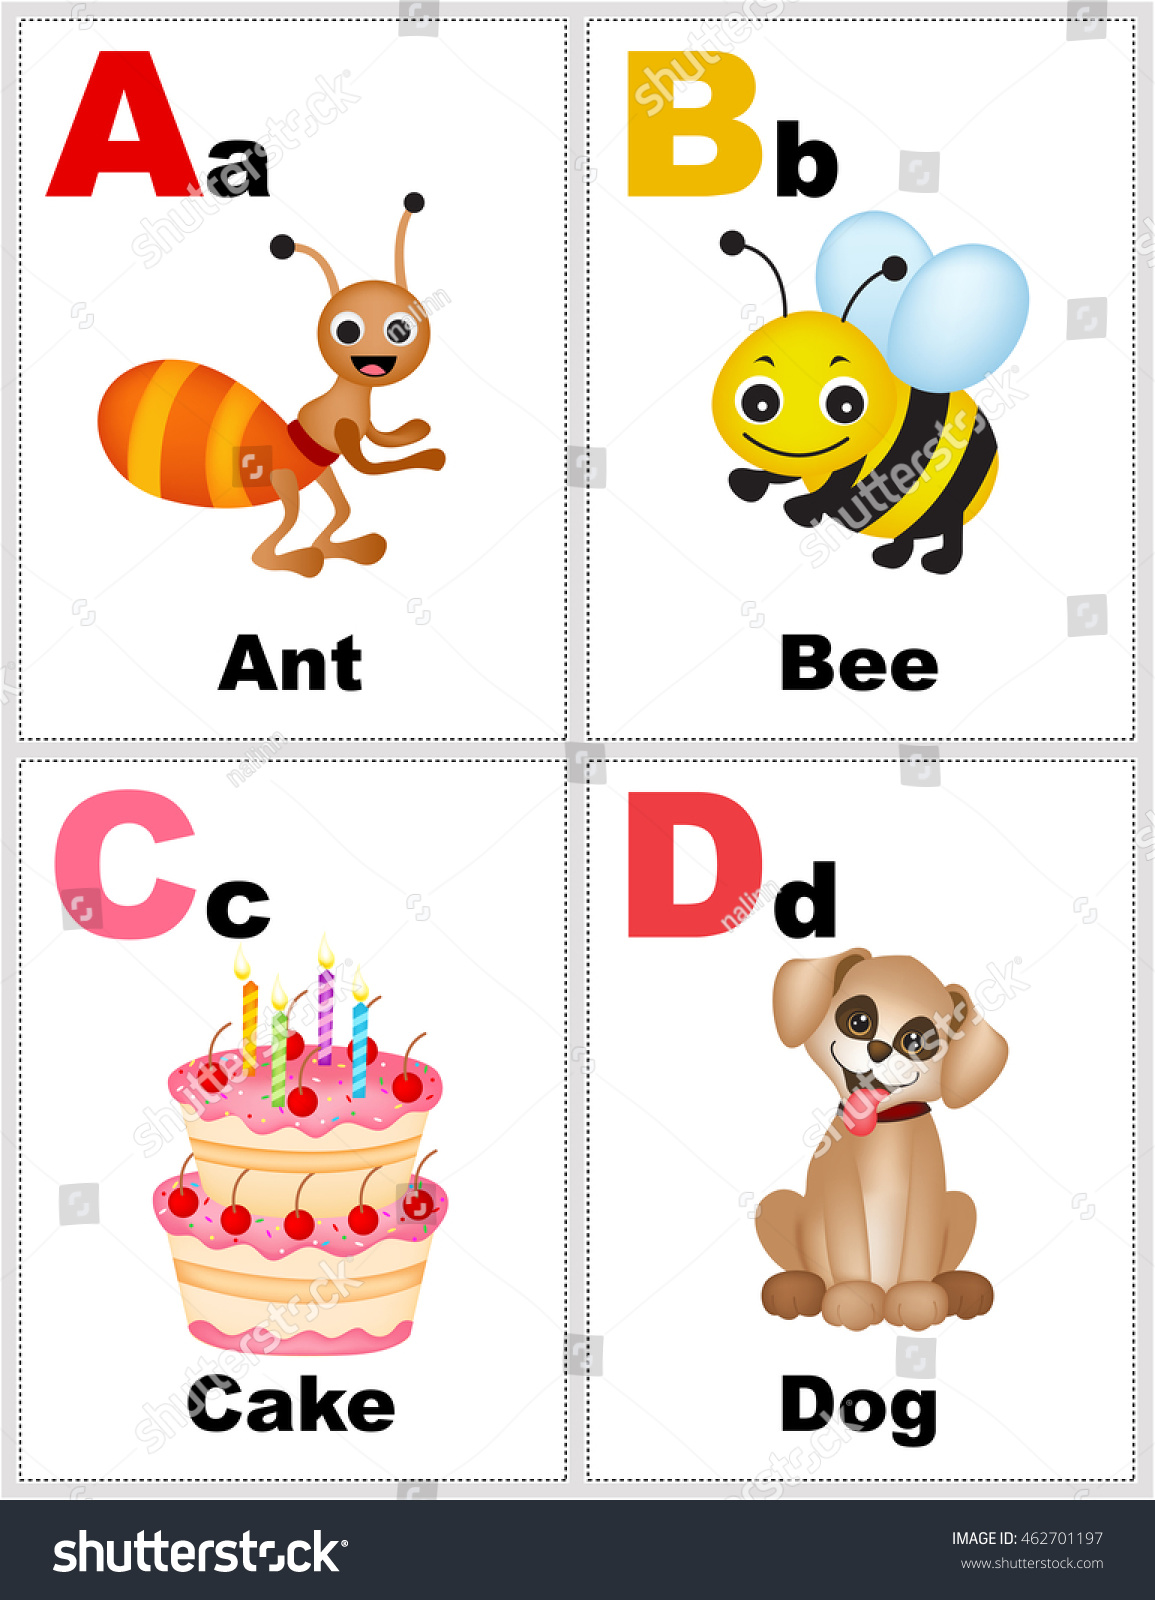 Alphabet Printable Flashcards Collection With Letter A B C